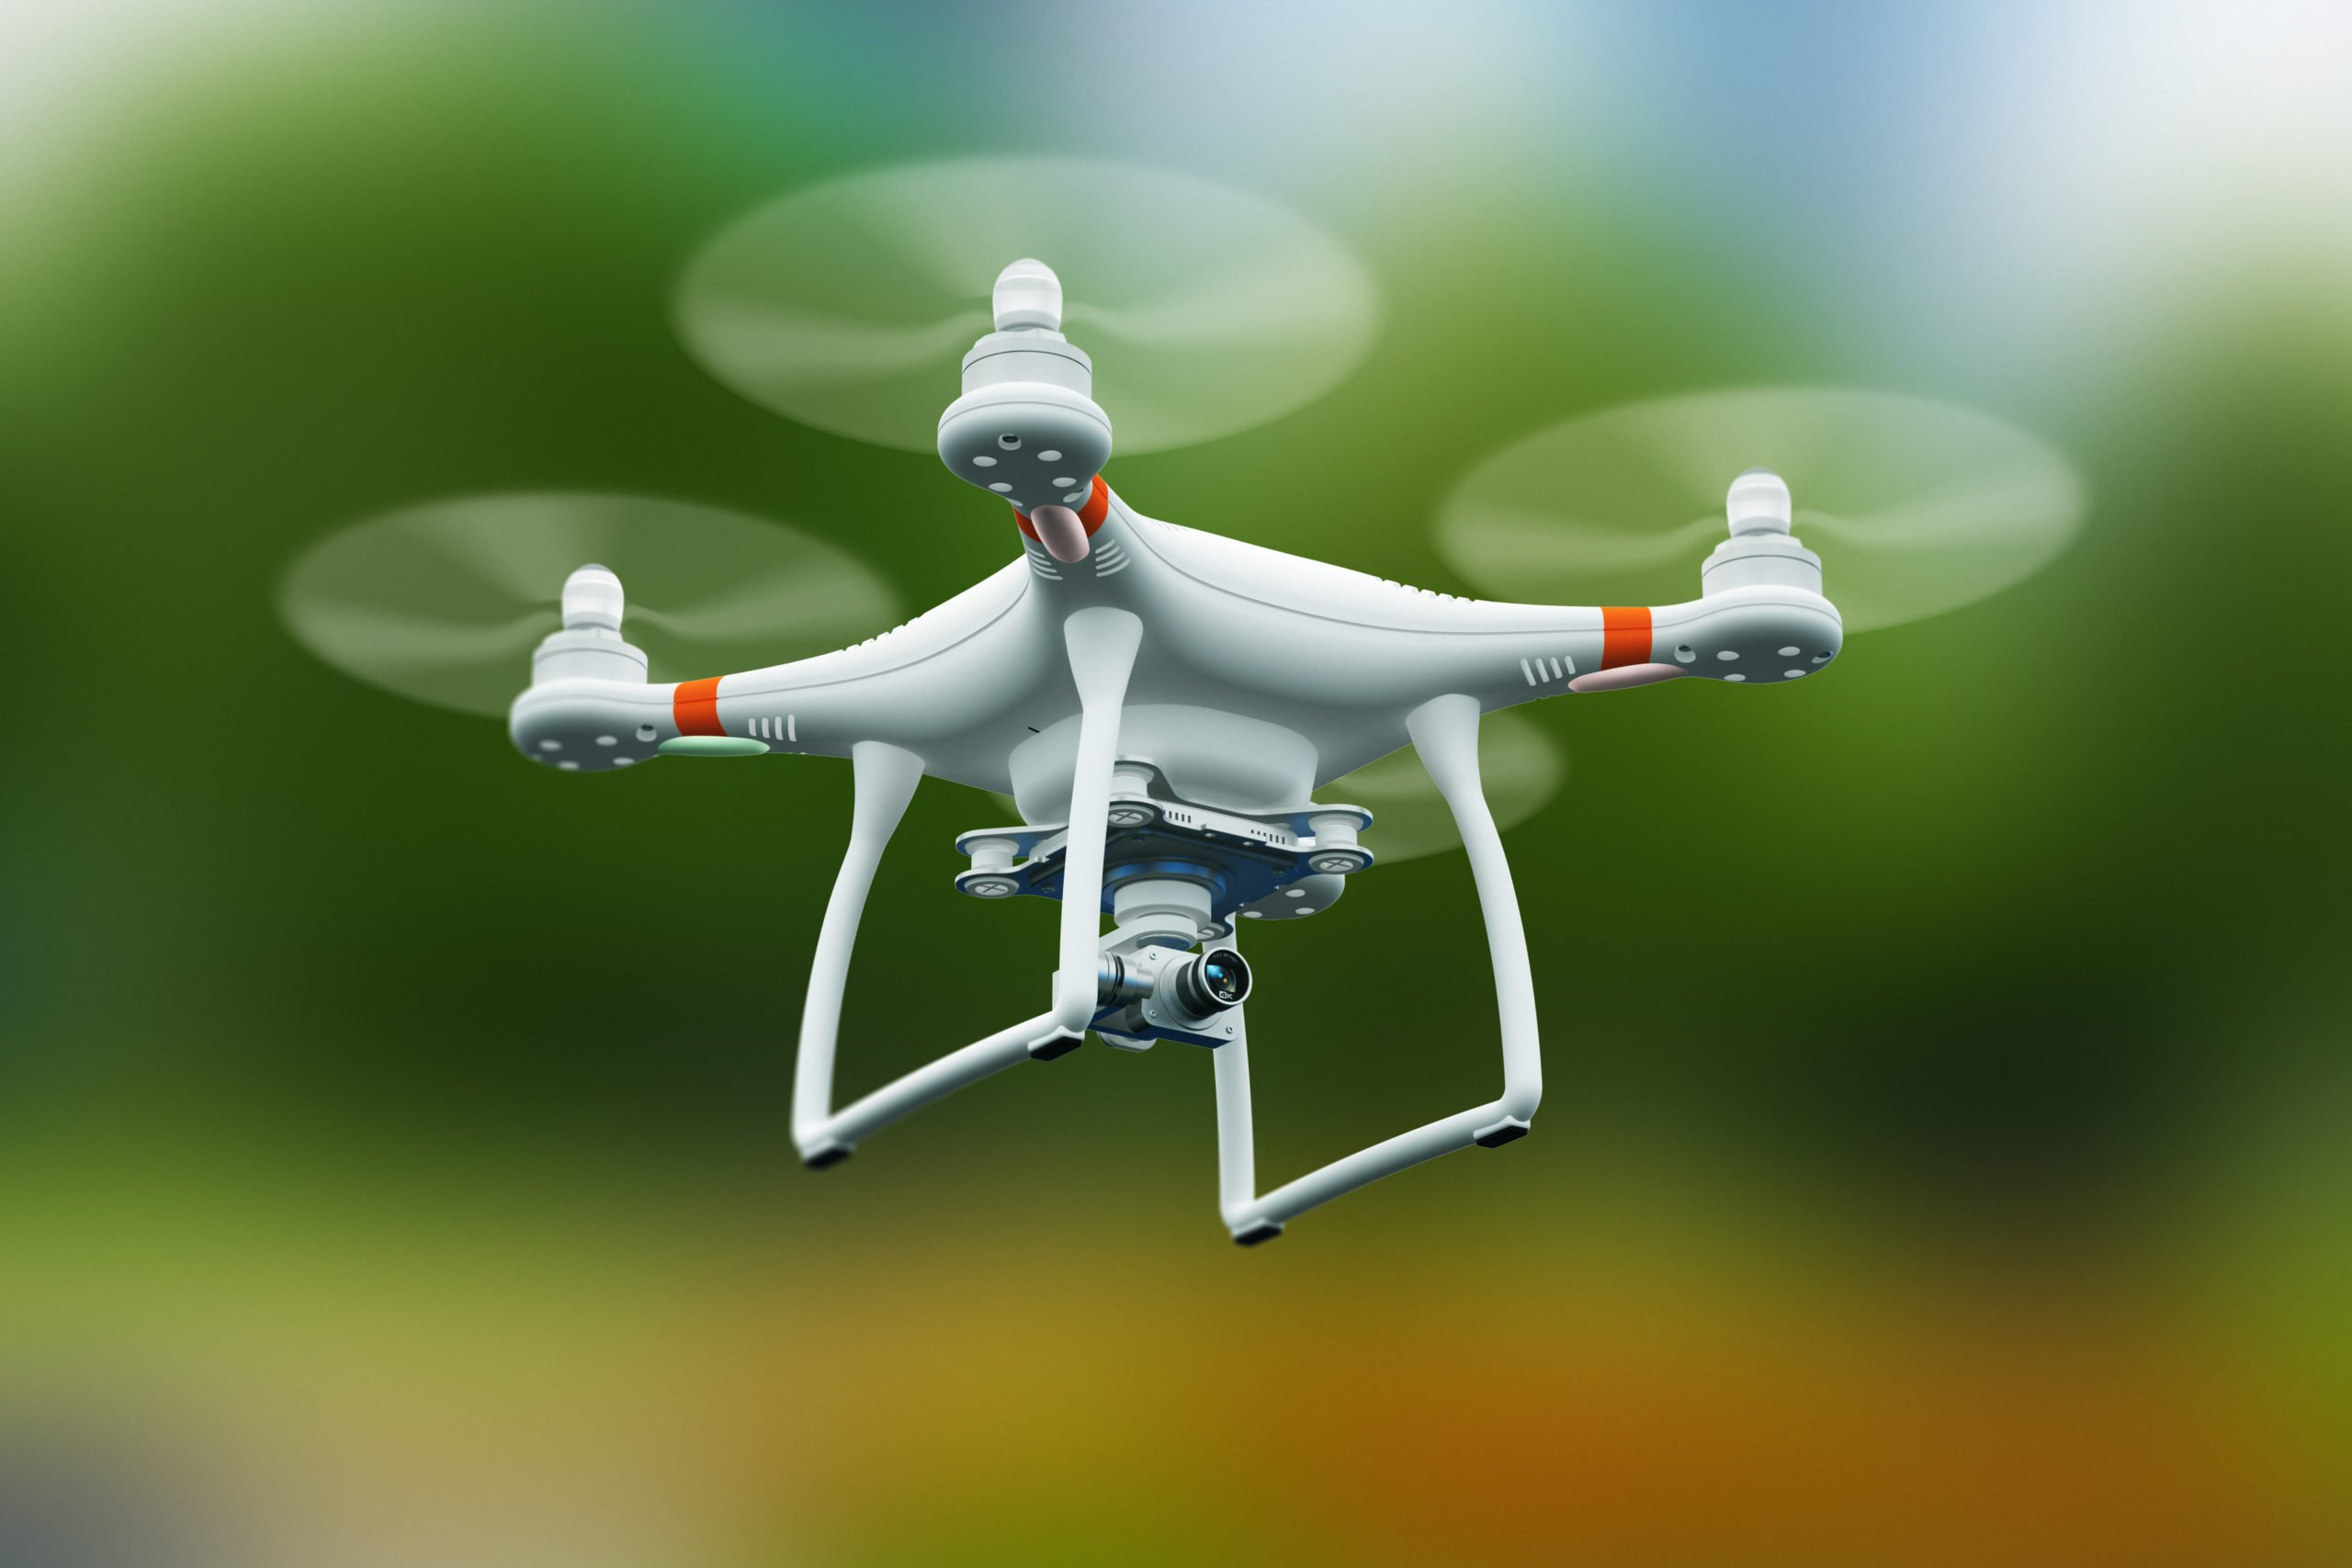 The use of drone technology in flood emergency response